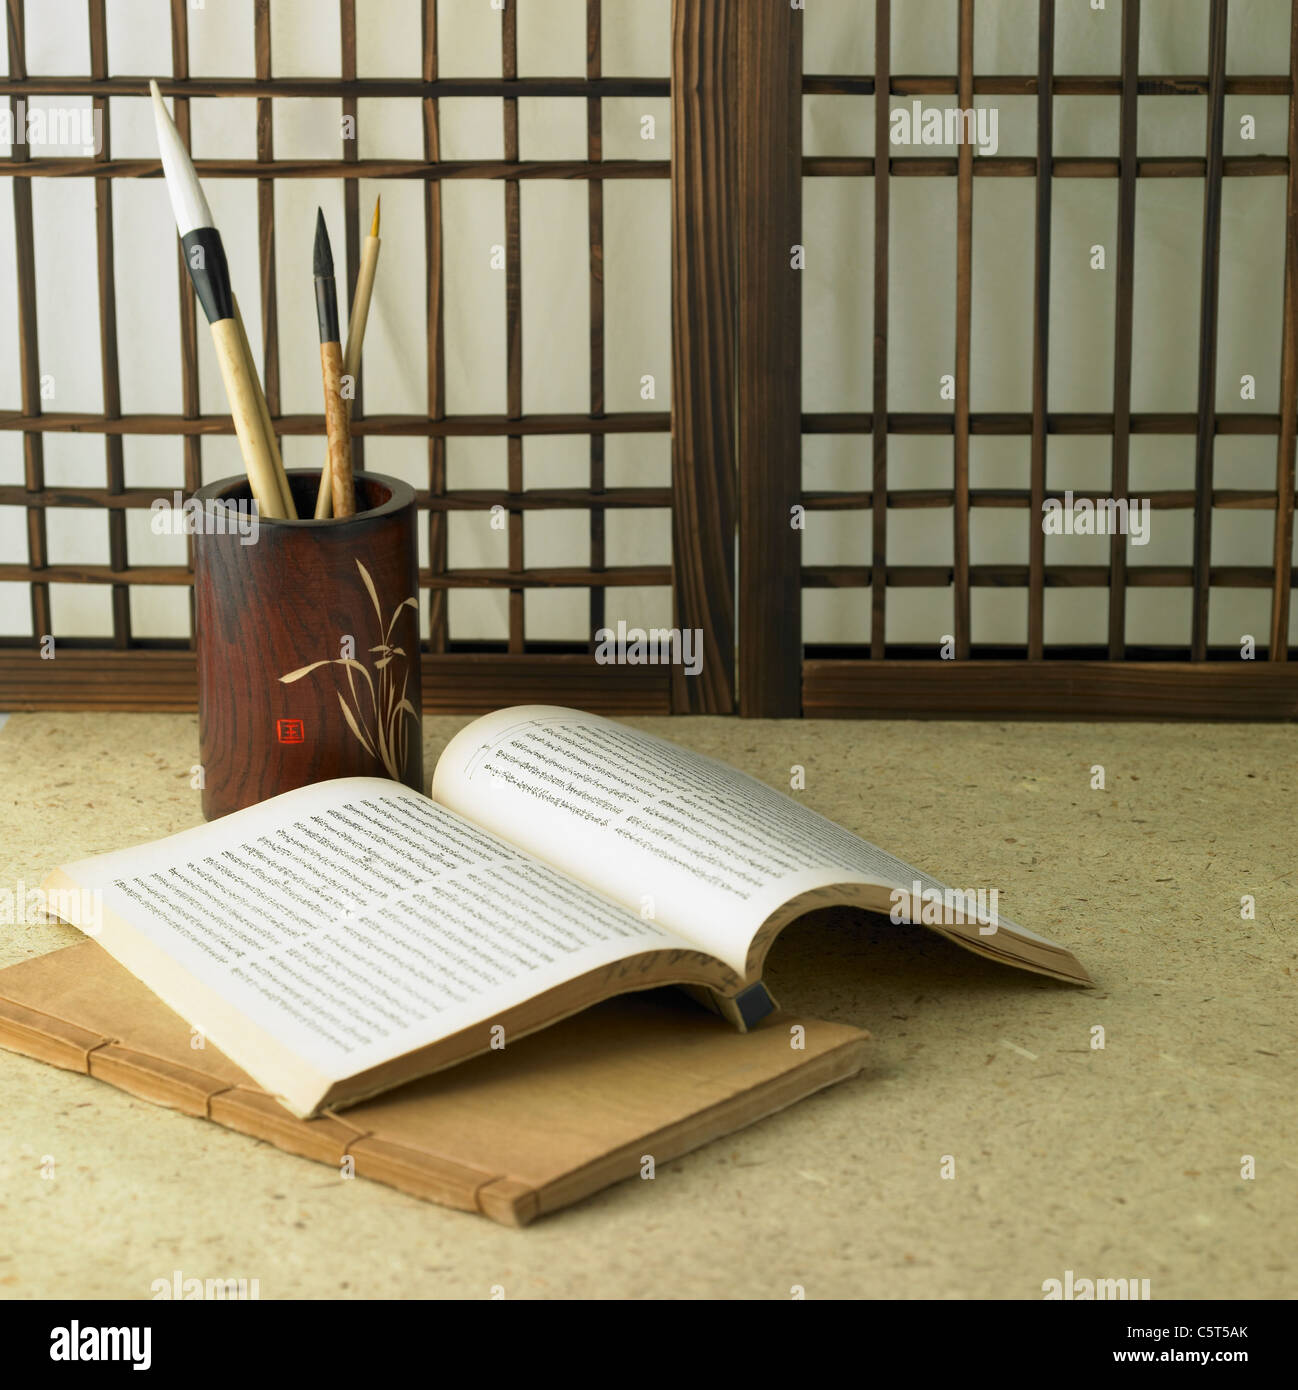 Korean traditional paper door brushes and books  sc 1 st  Alamy & Korean traditional paper door brushes and books Stock Photo ...